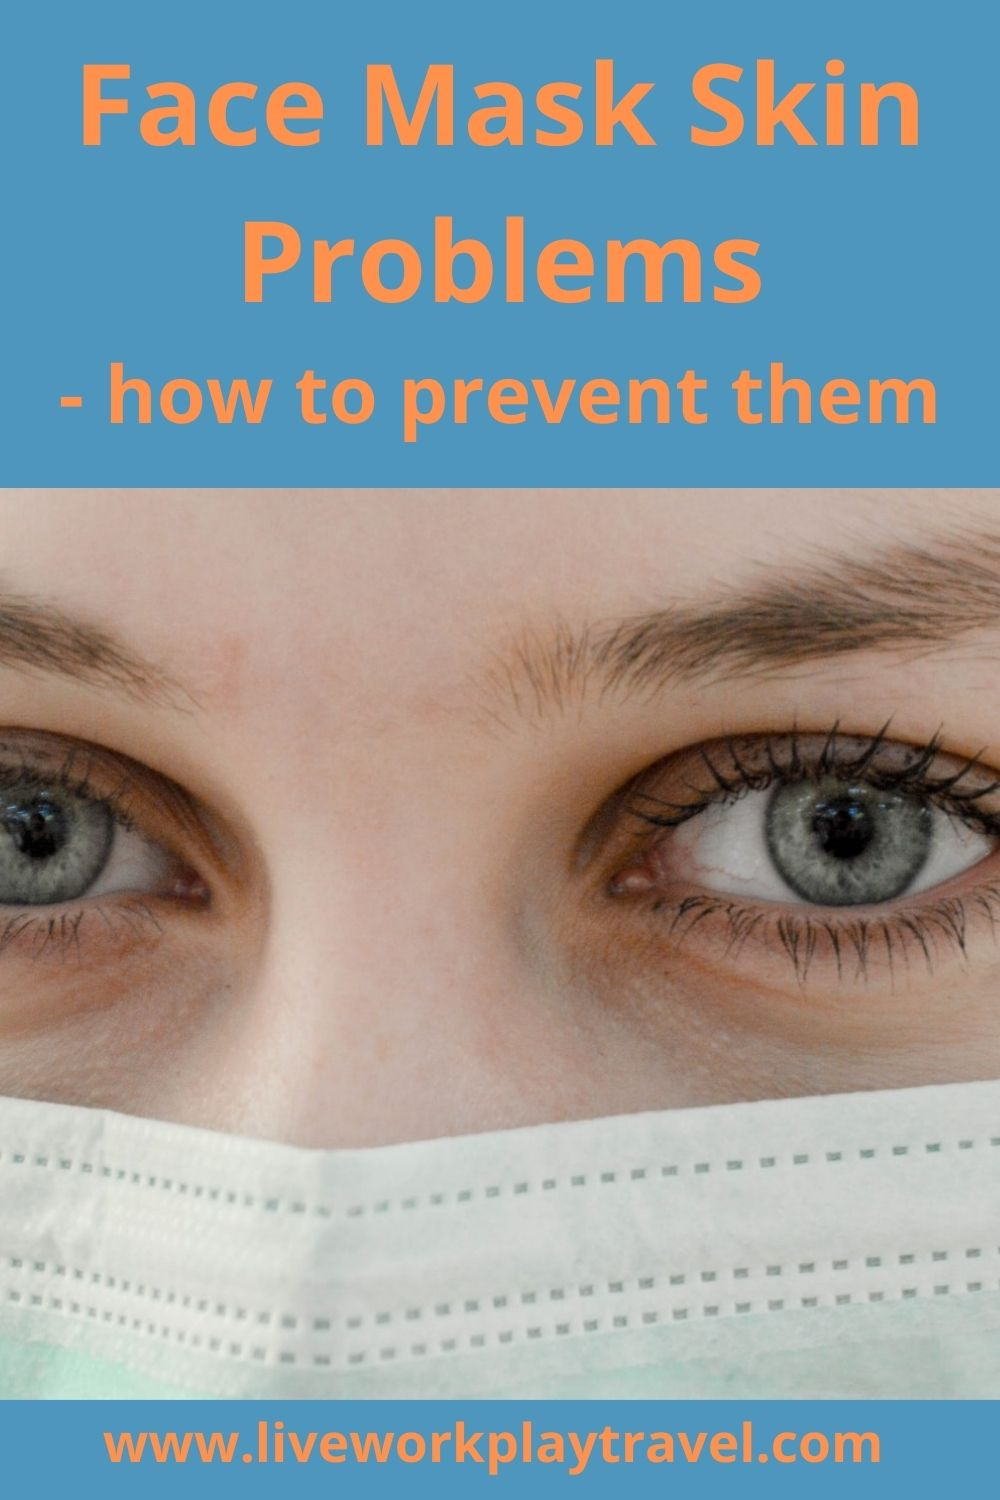 Female Wearing A Disposable Face Mask. Face Masks Can Cause Skin Problems. Here Are Suggestions On How To Reduce Skin Problems.